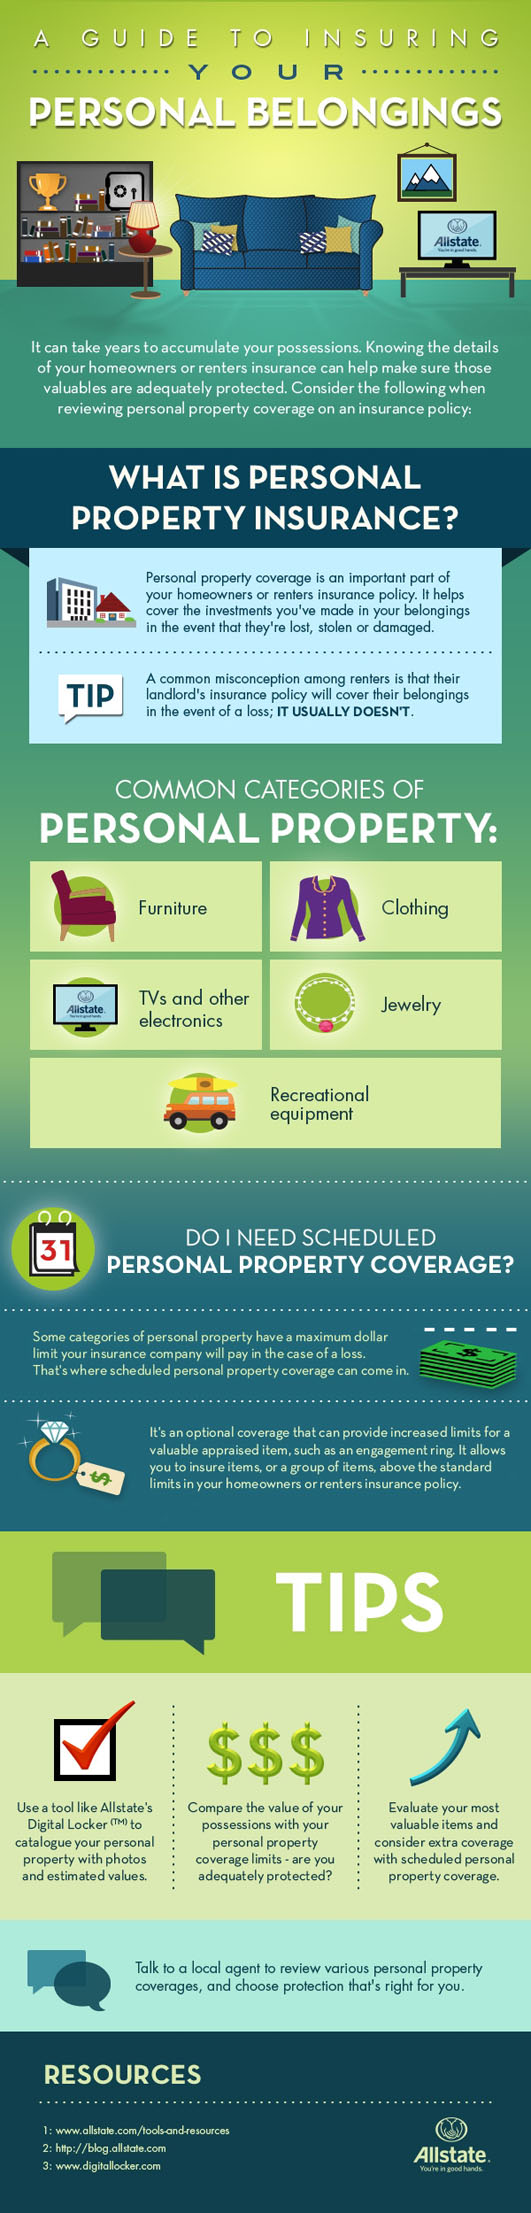 Personal Property Insurance